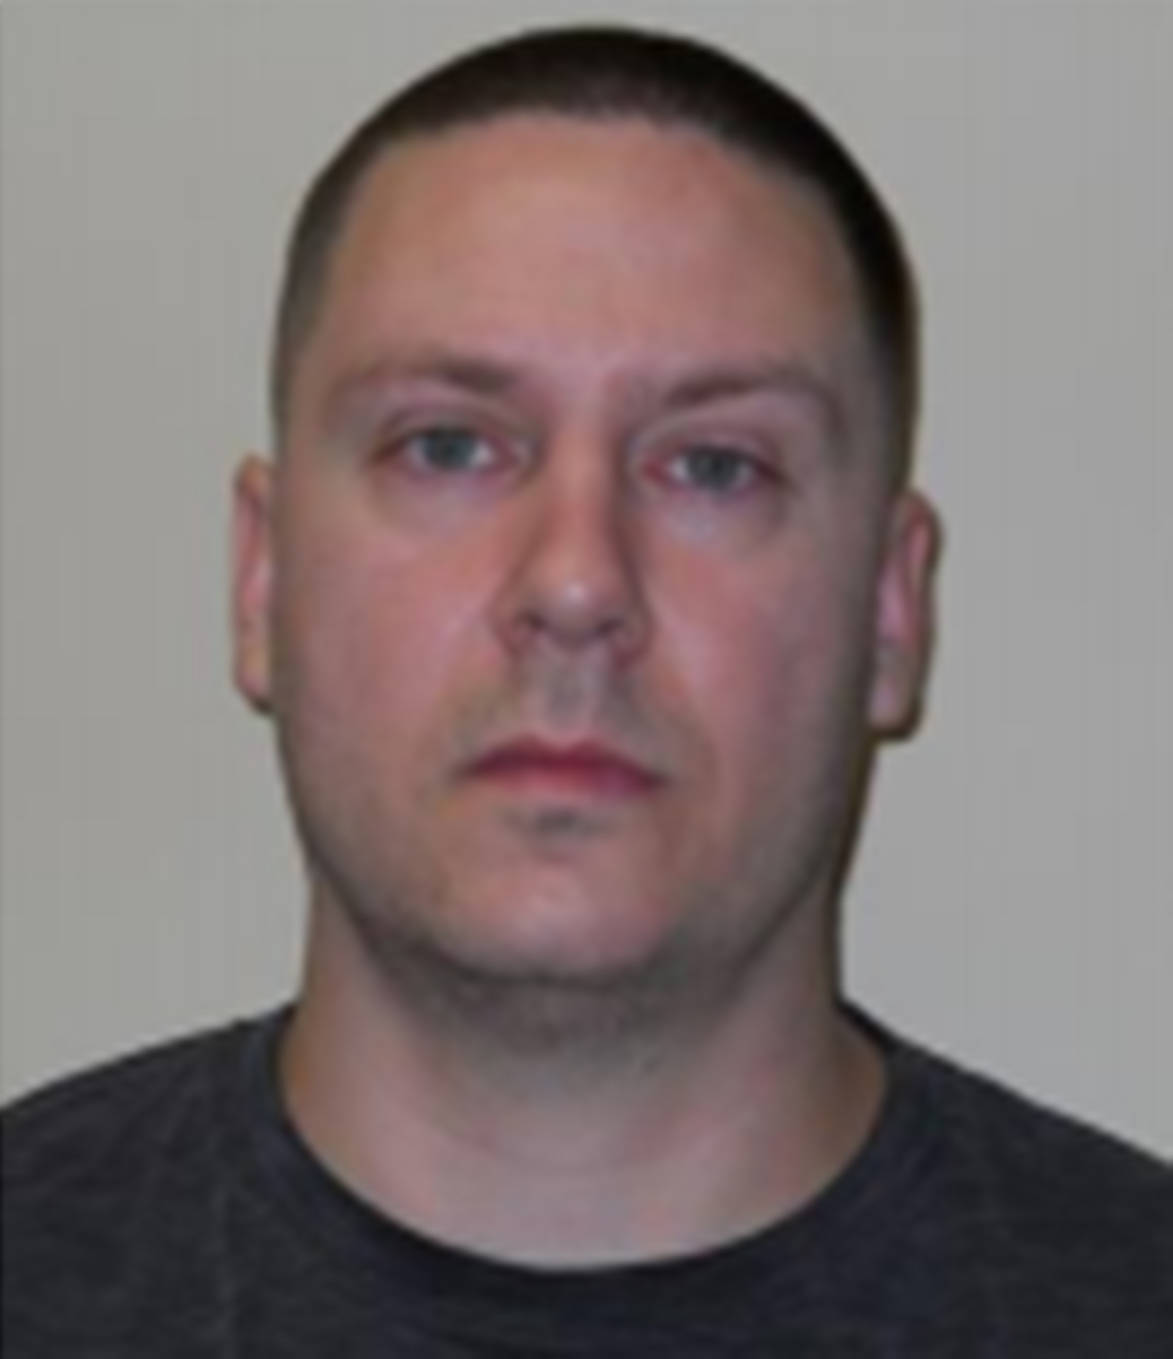 """Name: EMONTS, Denton Age: 38 Height: 6'1"""" ft Weight: 183lbs Hair: Brown Eyes: Hazel Wanted: Traffic in Schedule I/II Substance Warrant in effect: July 22, 2021 Parole Jurisdiction: Vancouver, B.C"""